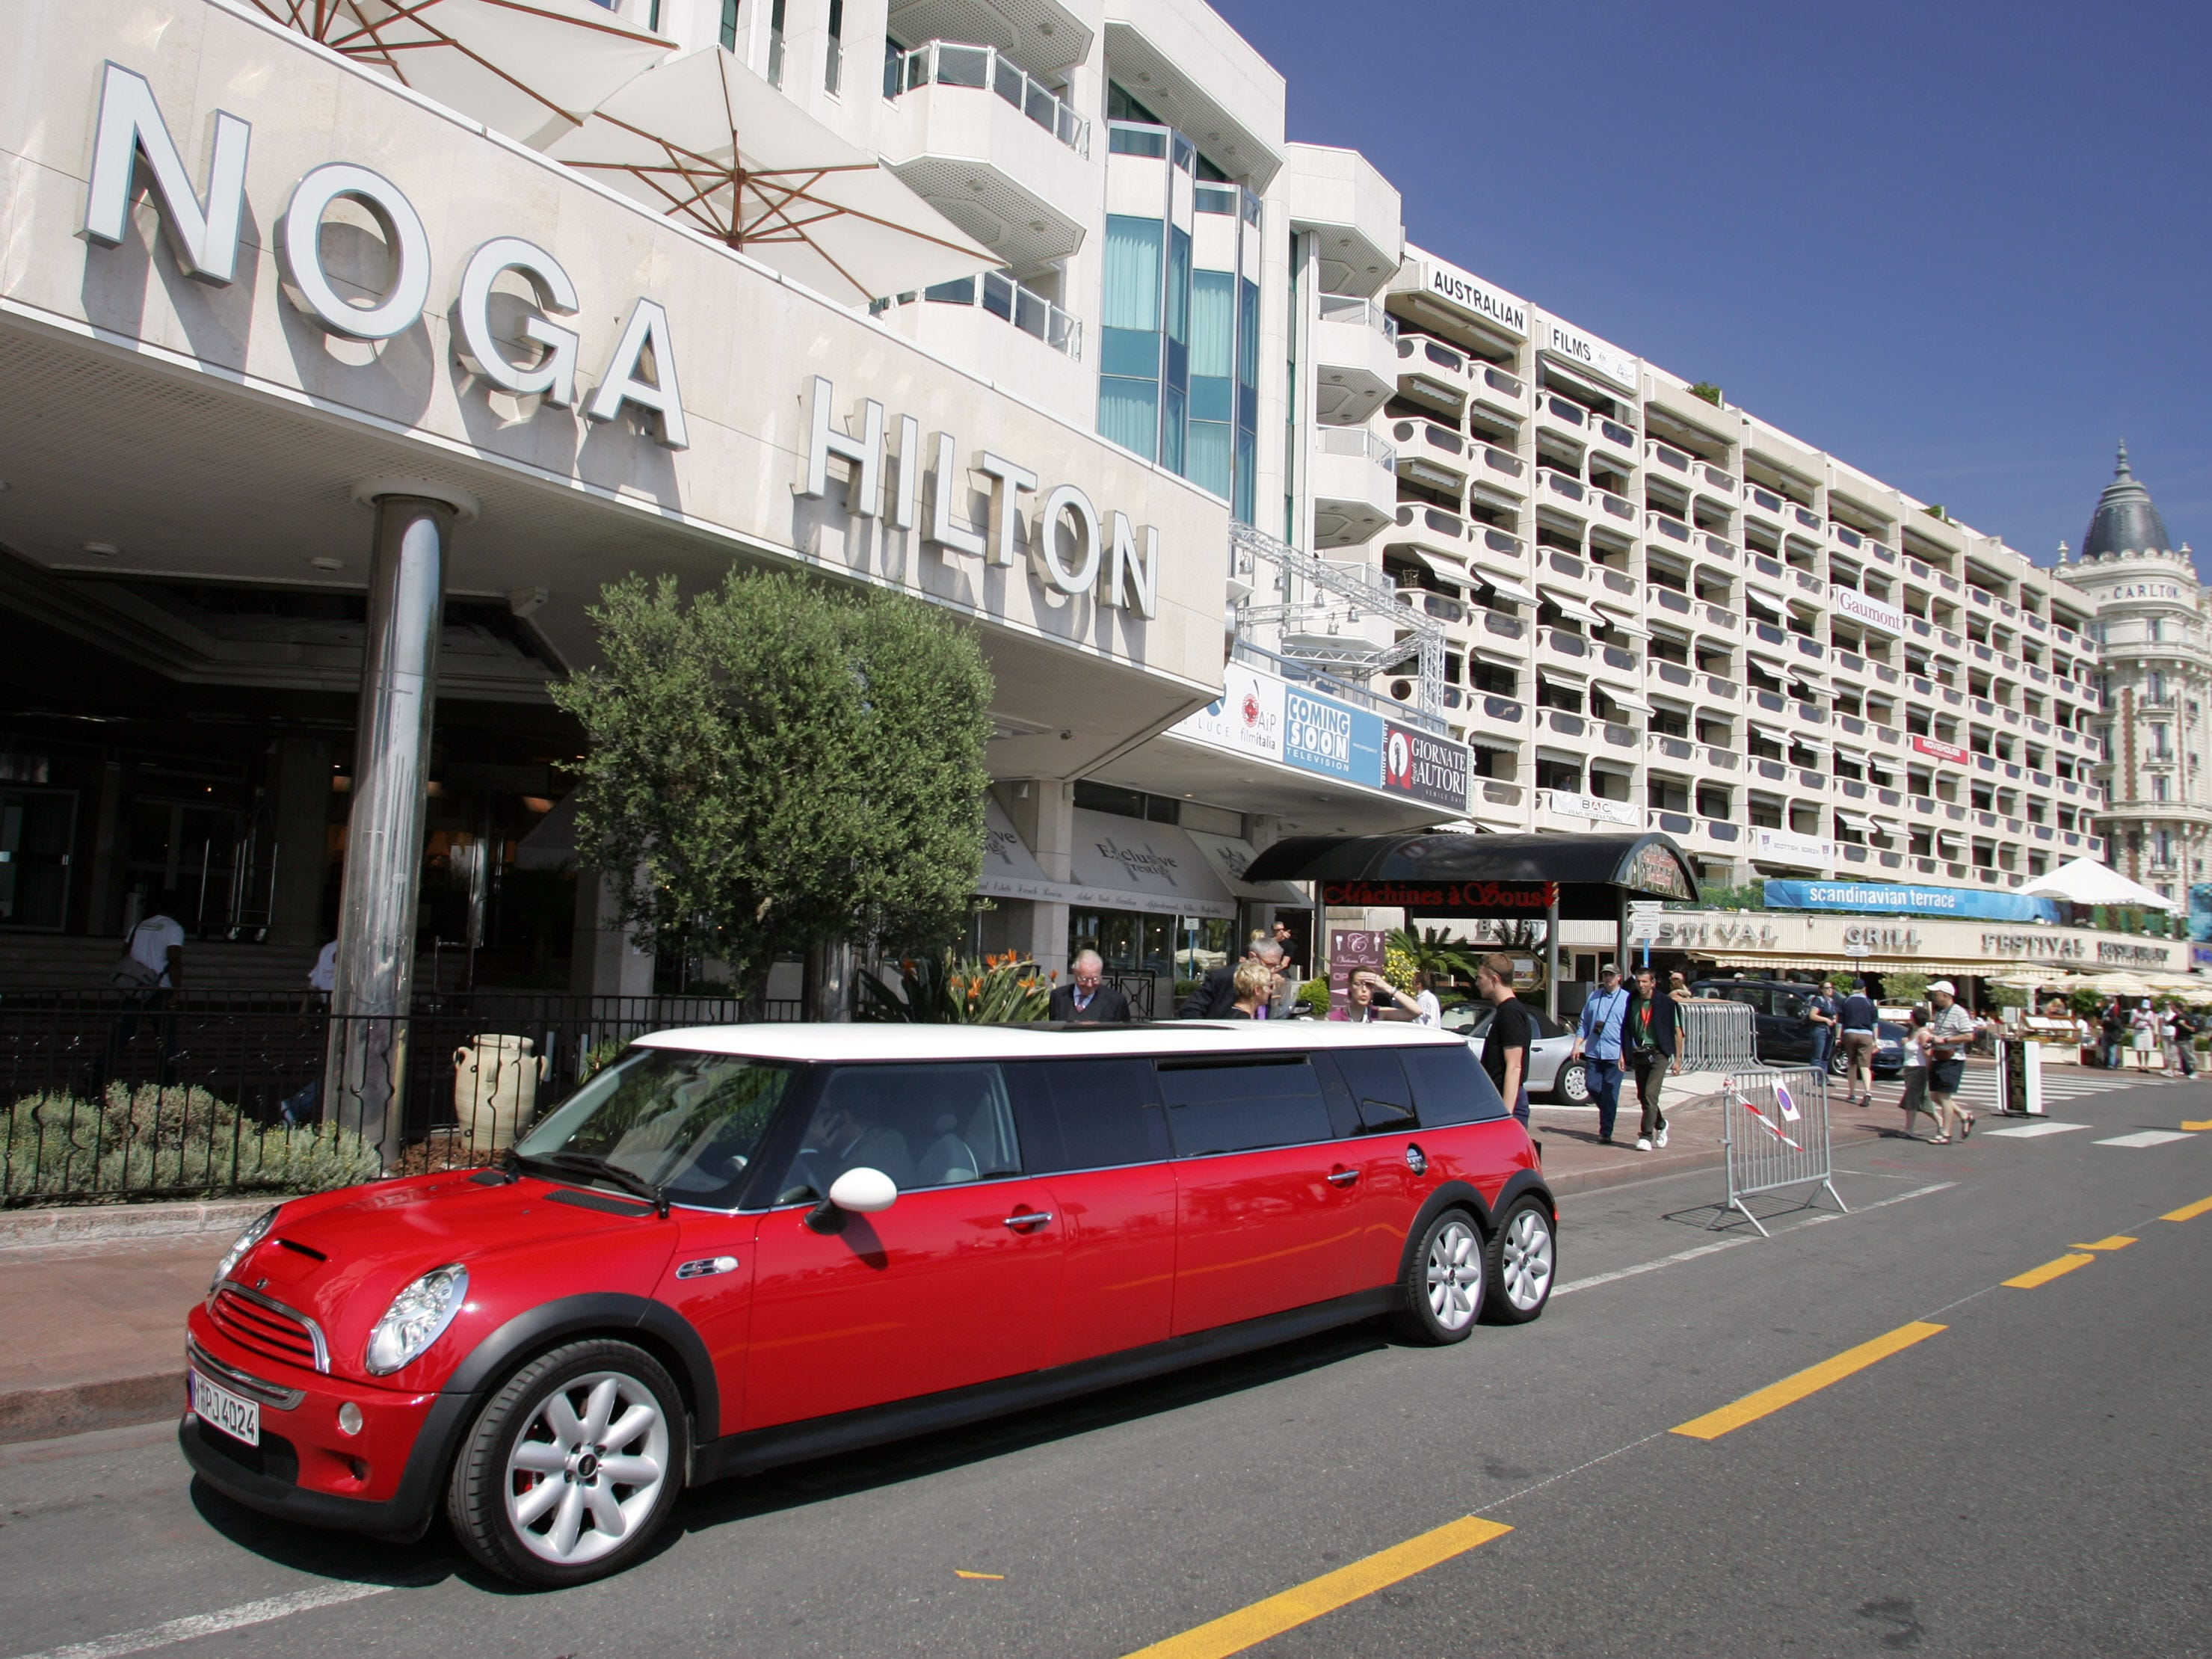 A Mini limousine drives past the Hilton hotel in Cannes, France, May 10, 2005.